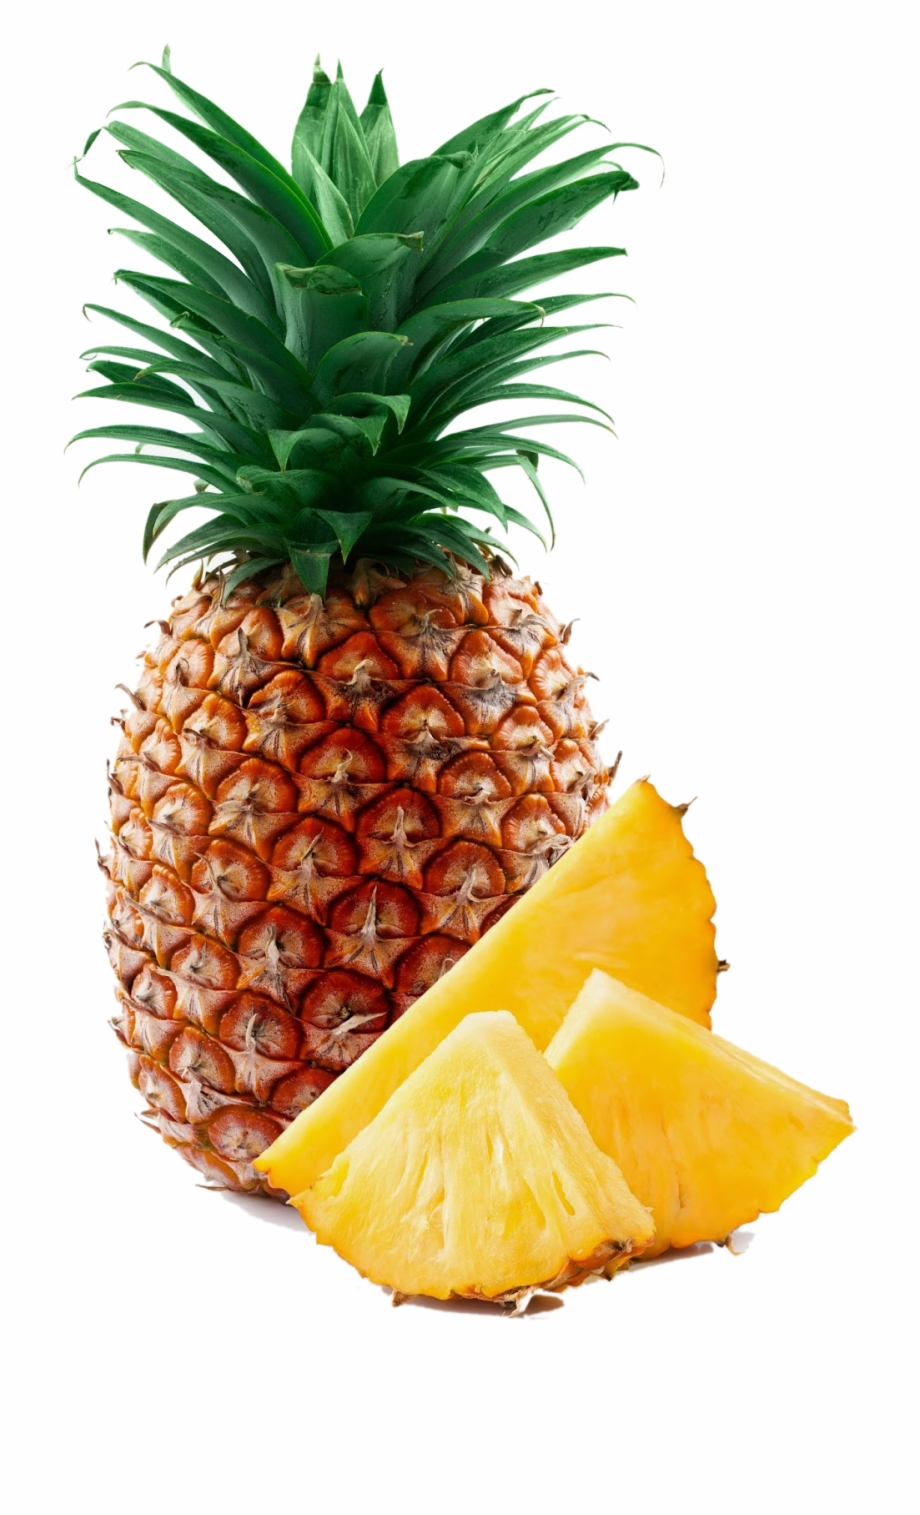 Golden Pineapple Free PNG Images & Clipart Download #341527.